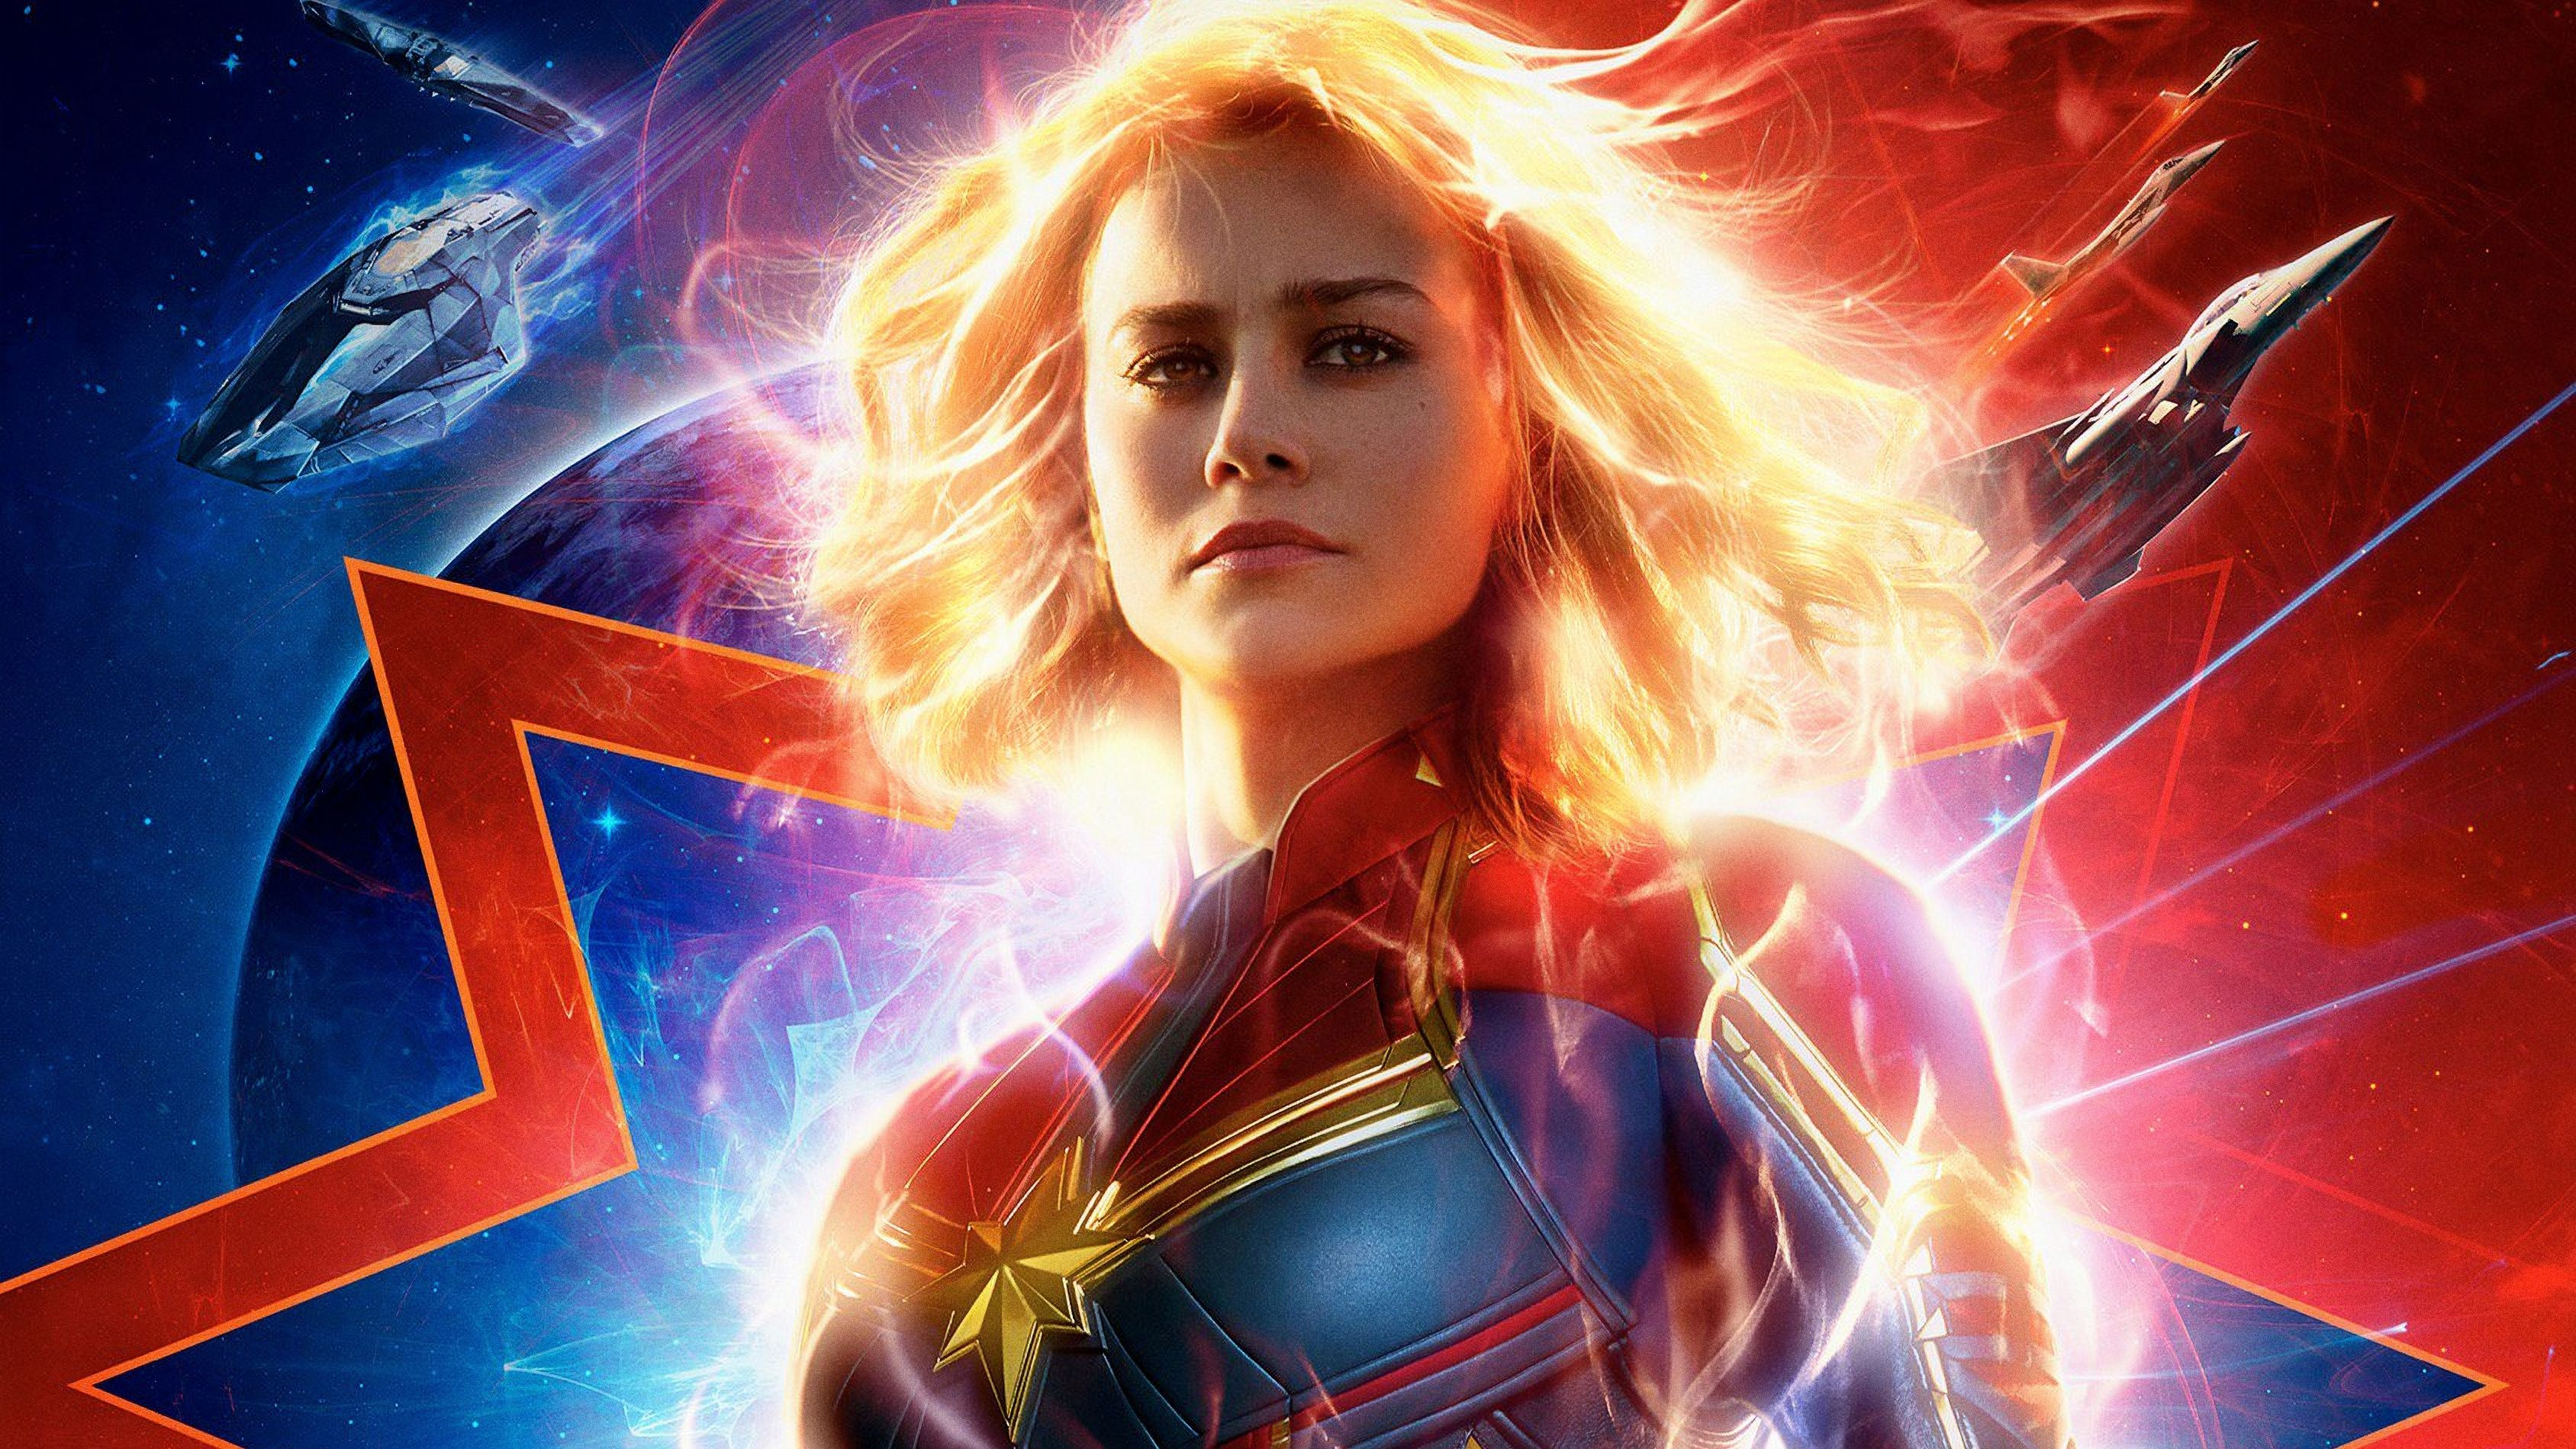 3376x1899 Captain Marvel Movie 2019 4k, HD Movies, 4k Wallpapers ...